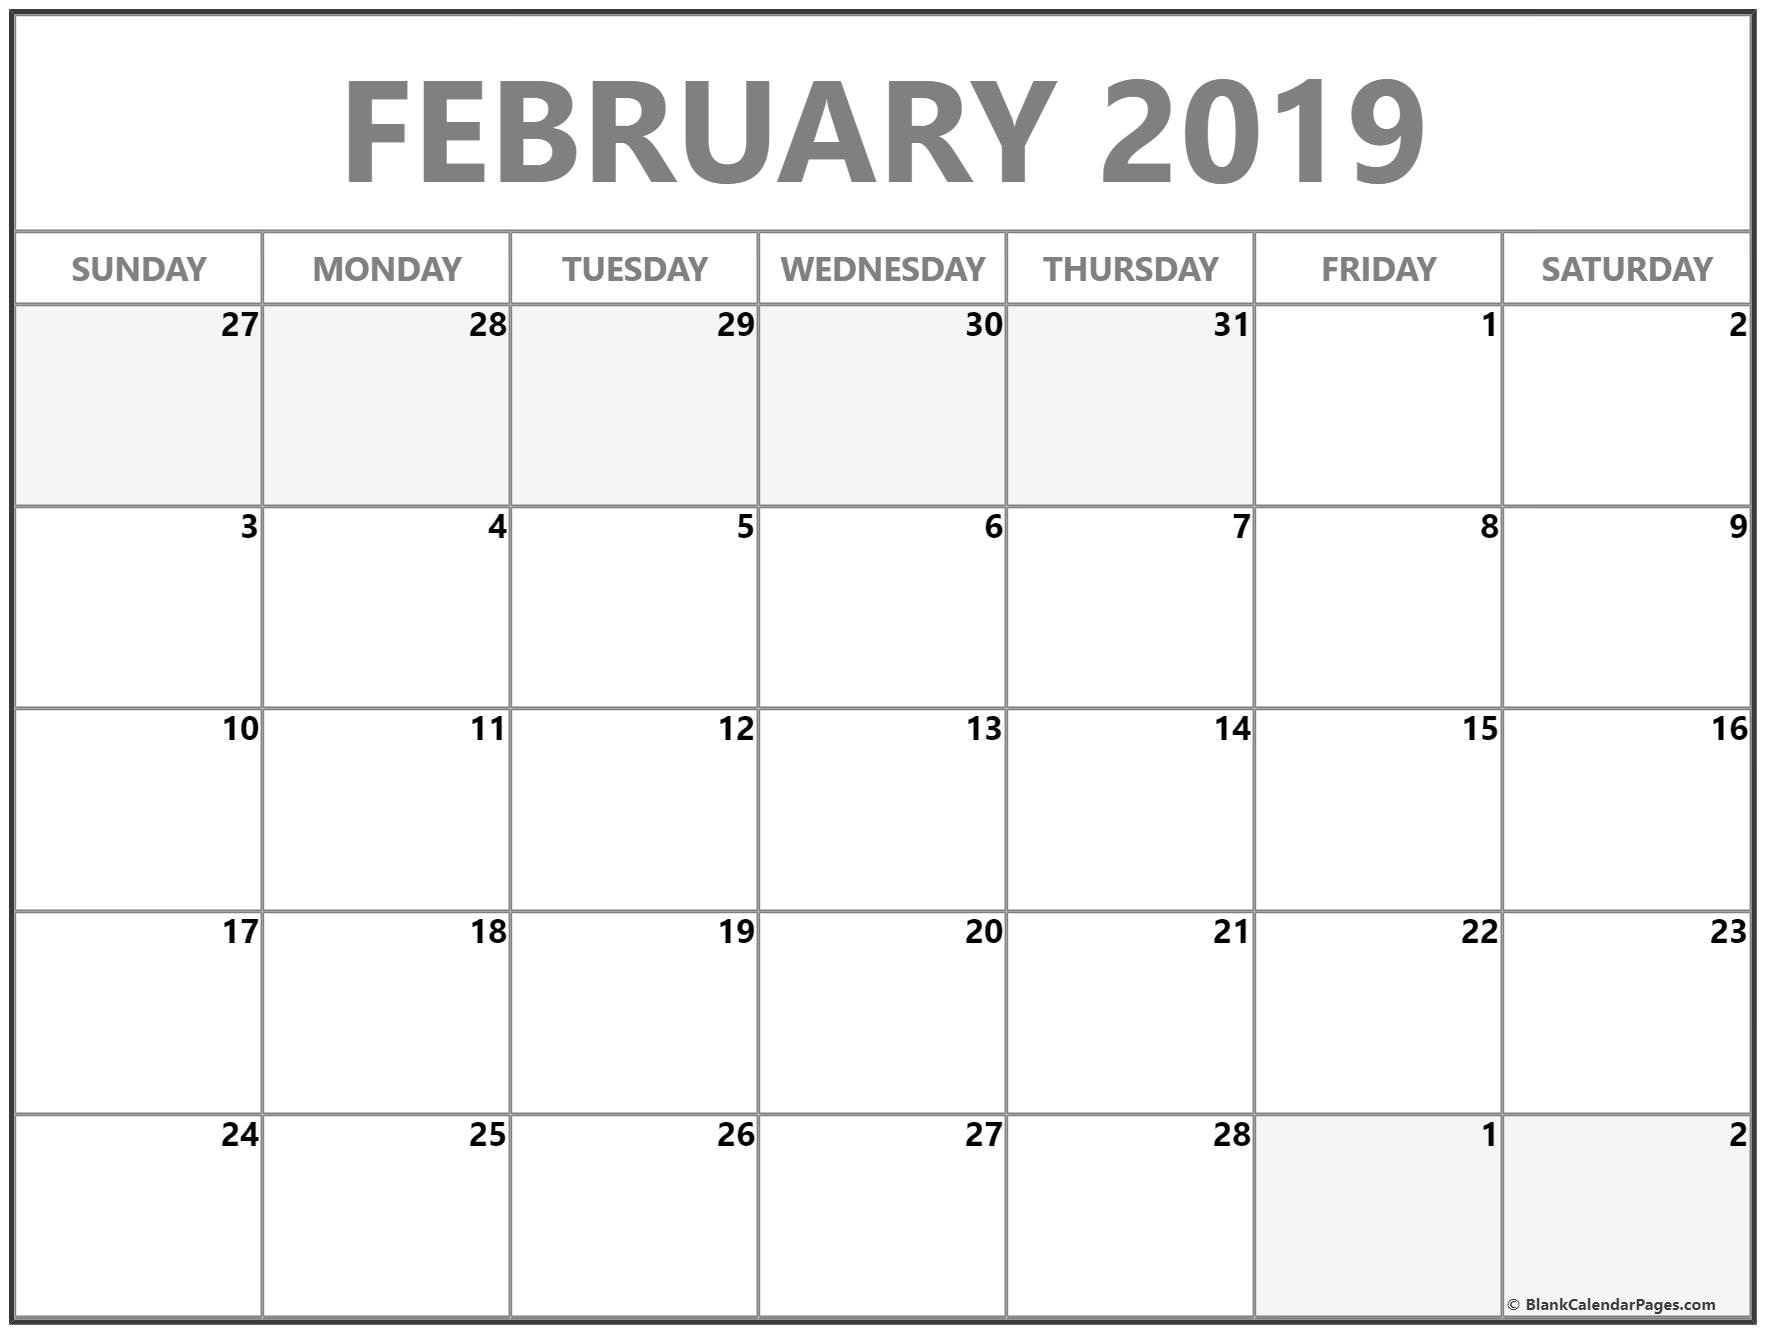 8 free february 2019 a4 calendar download calendar 2018 free::February 2019 Calendar Fillable